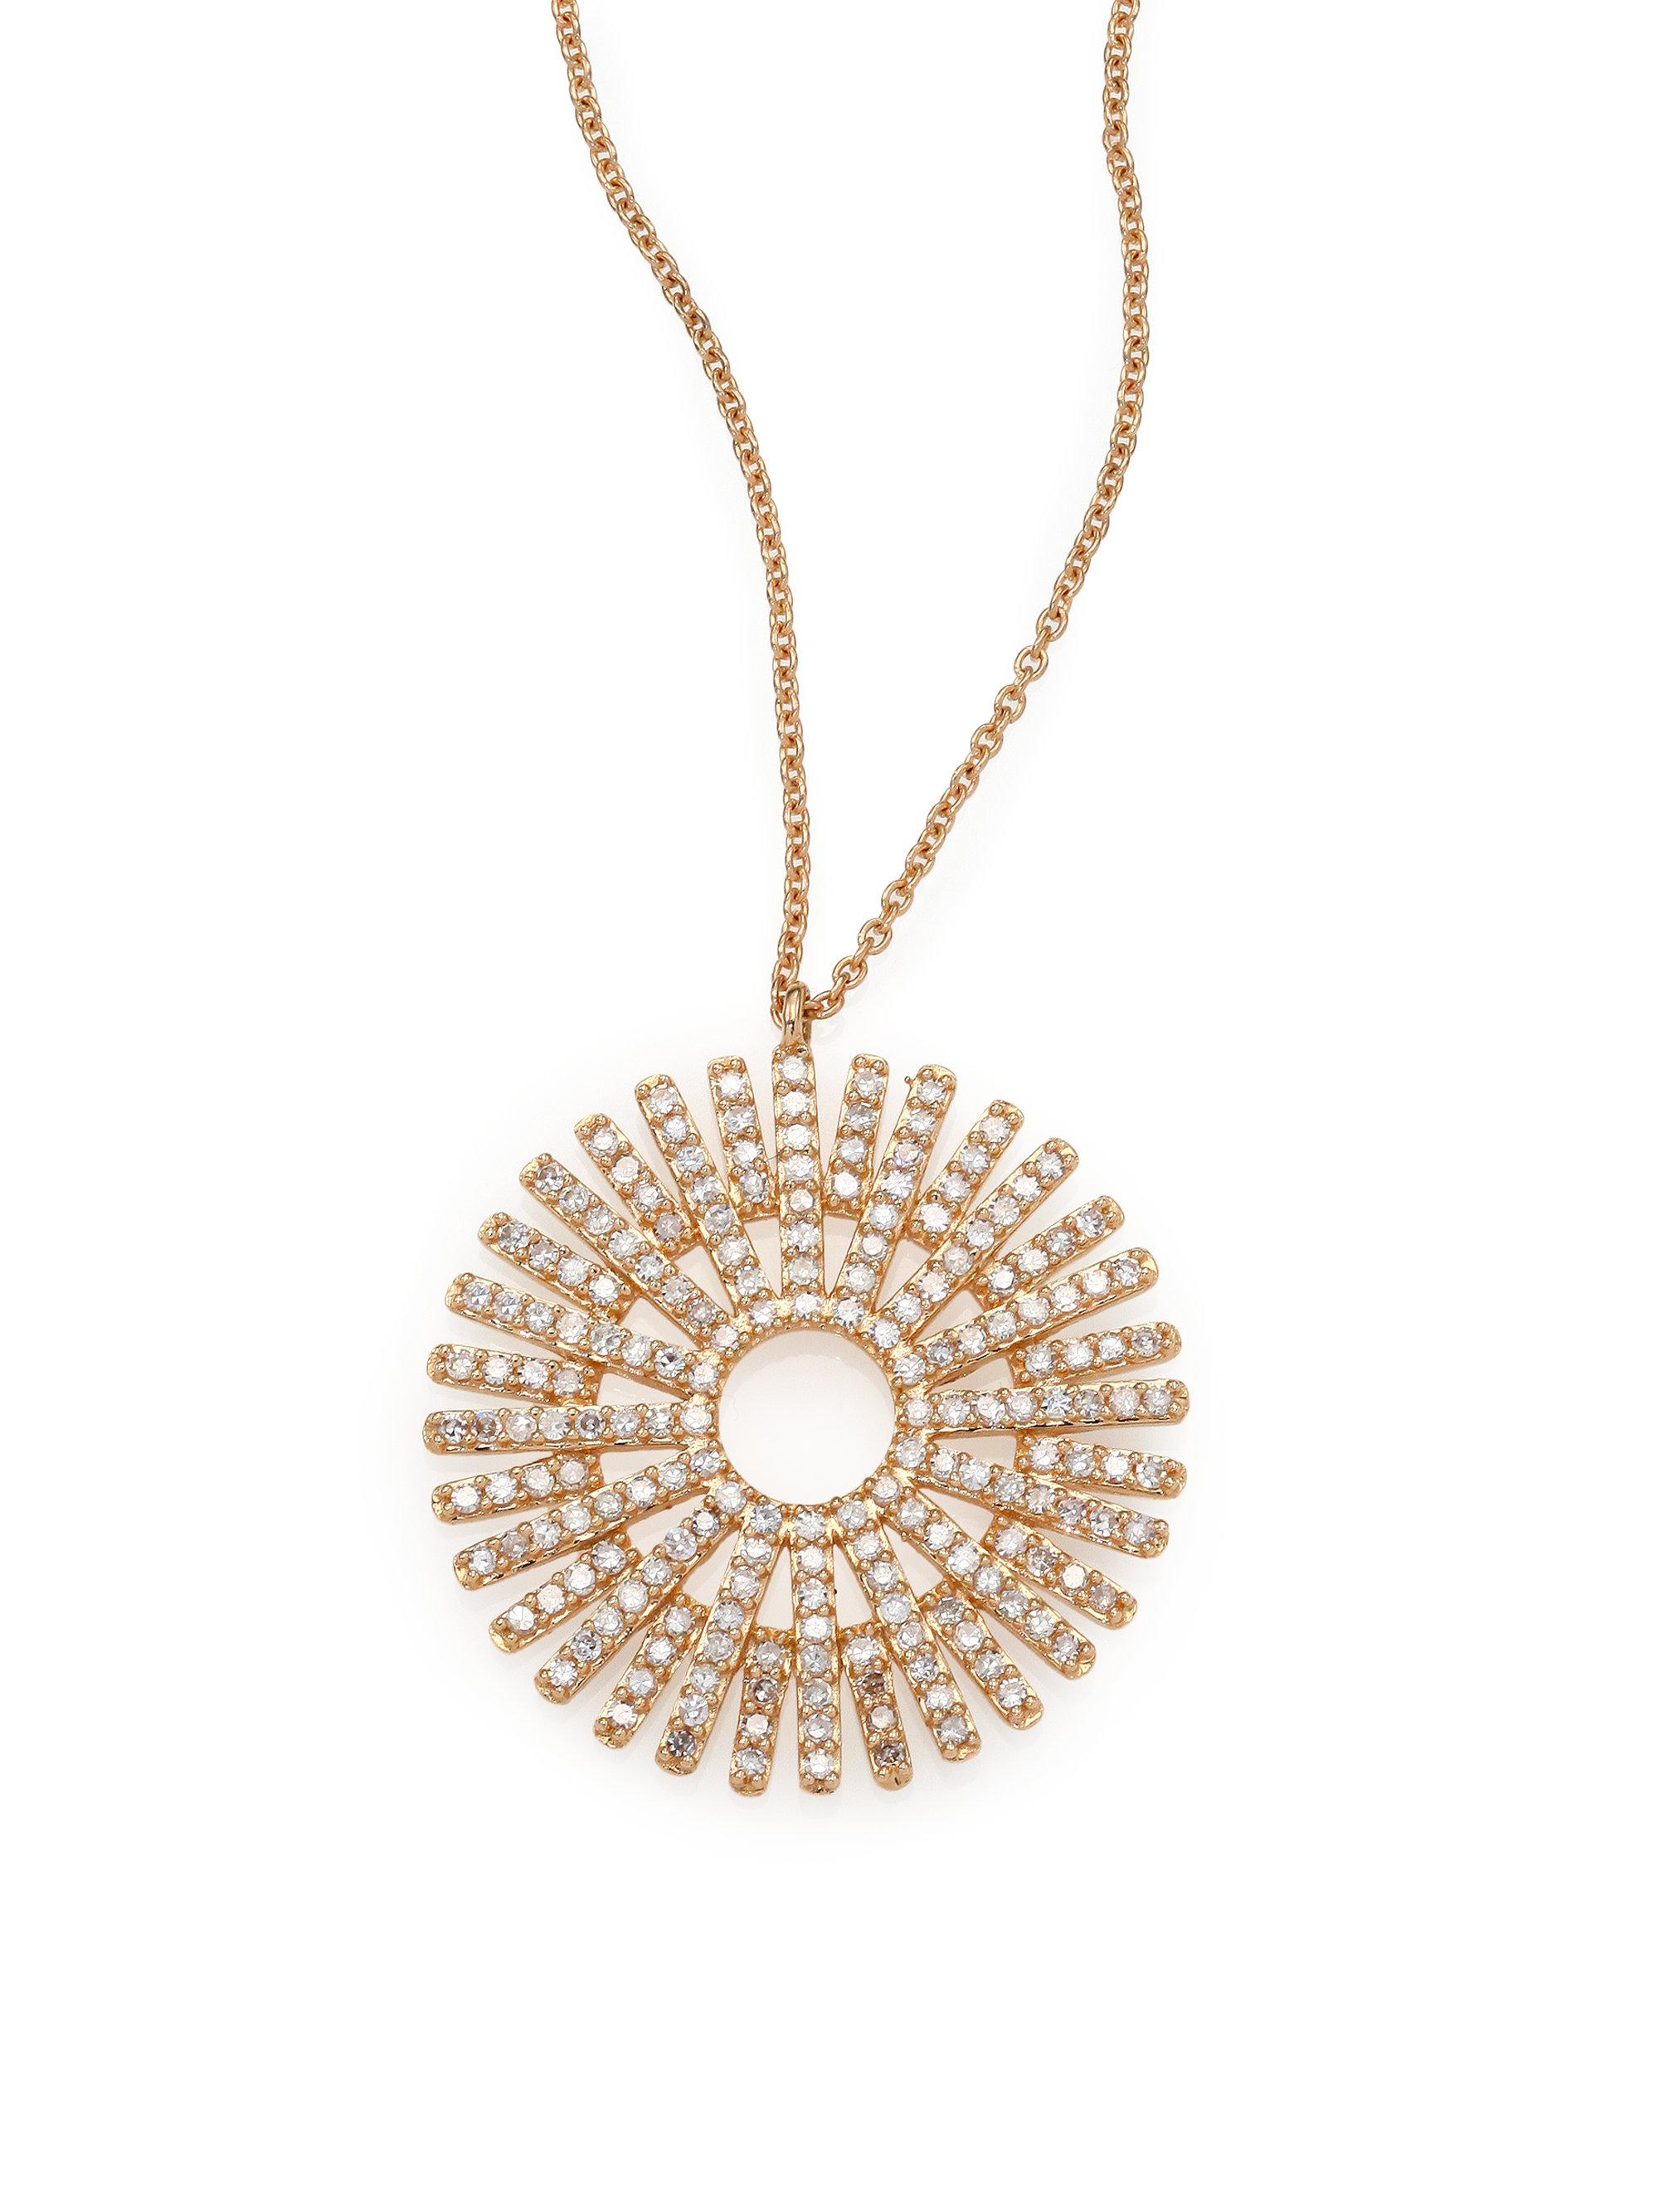 chain copy rolo white link necklace a product and edwards diamond cluster davies gold pendant one solitaire